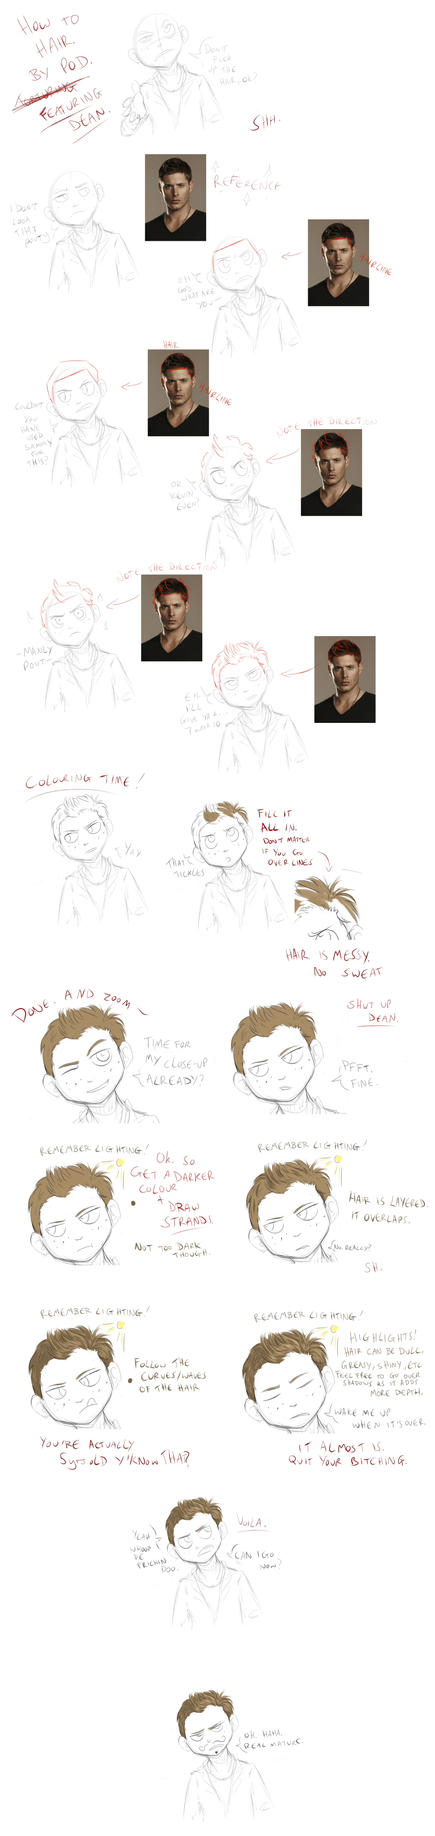 How To Hair by Choco-Doodle